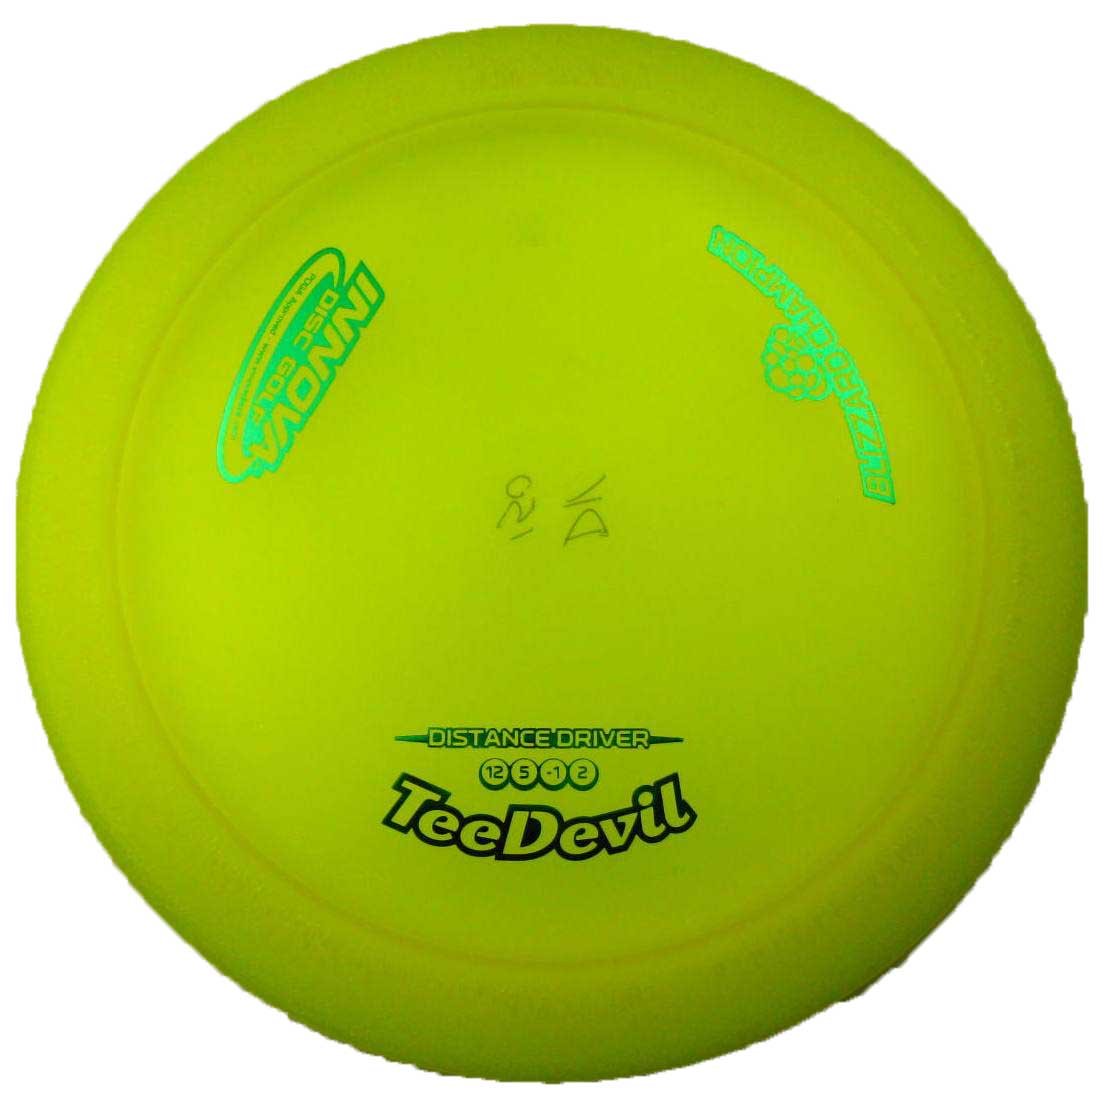 Tee Devil Blizzard Yellow